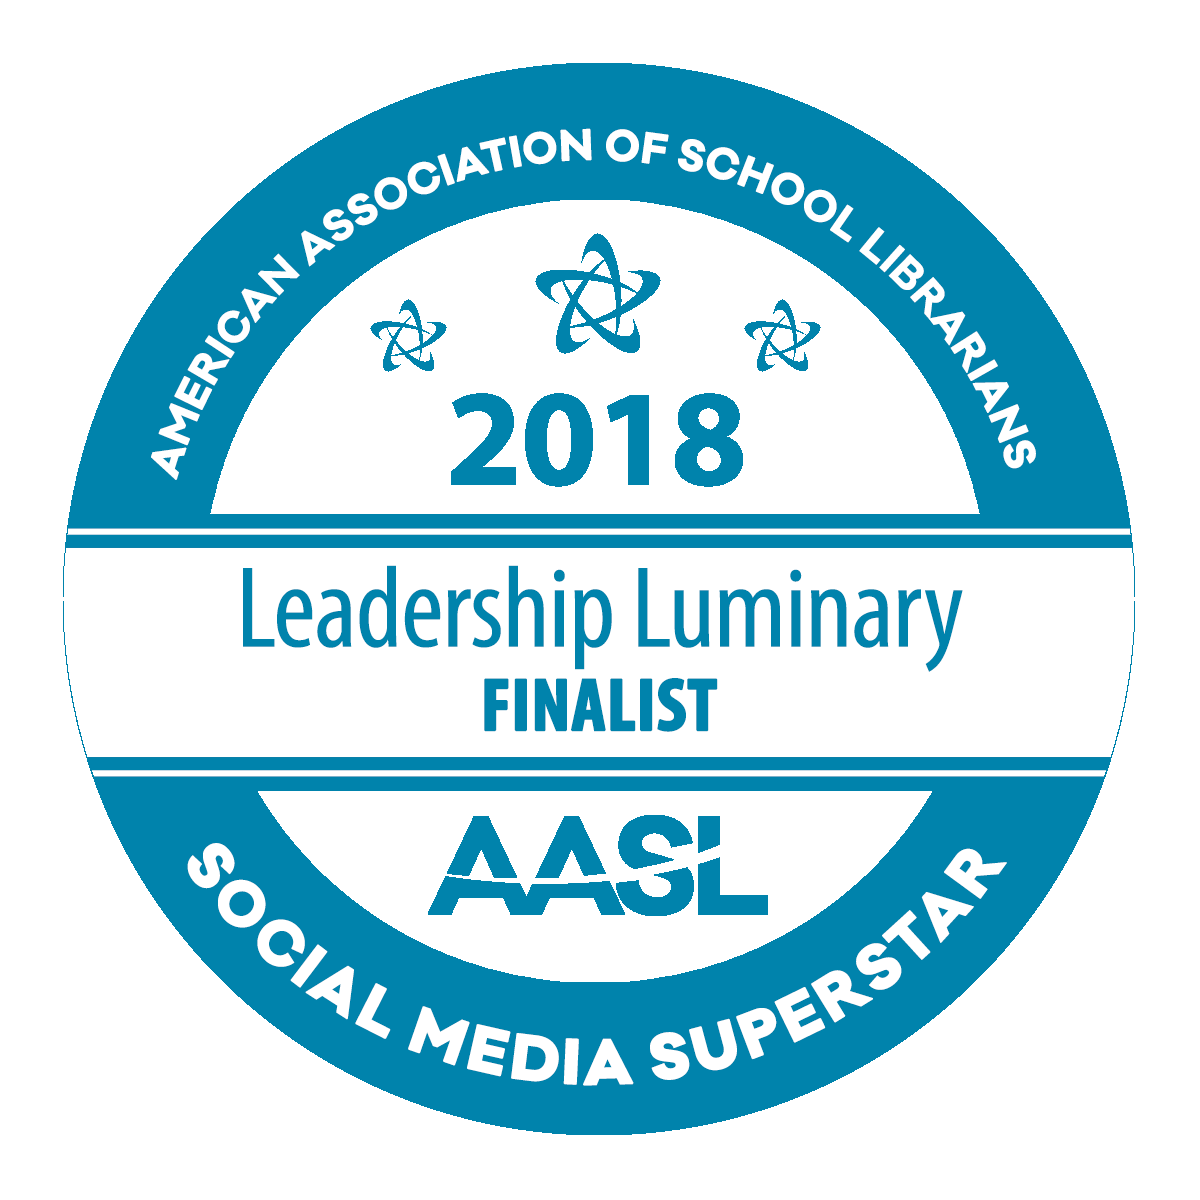 2018 AASL Social Media Superstar Finalist: Leadership Luminary